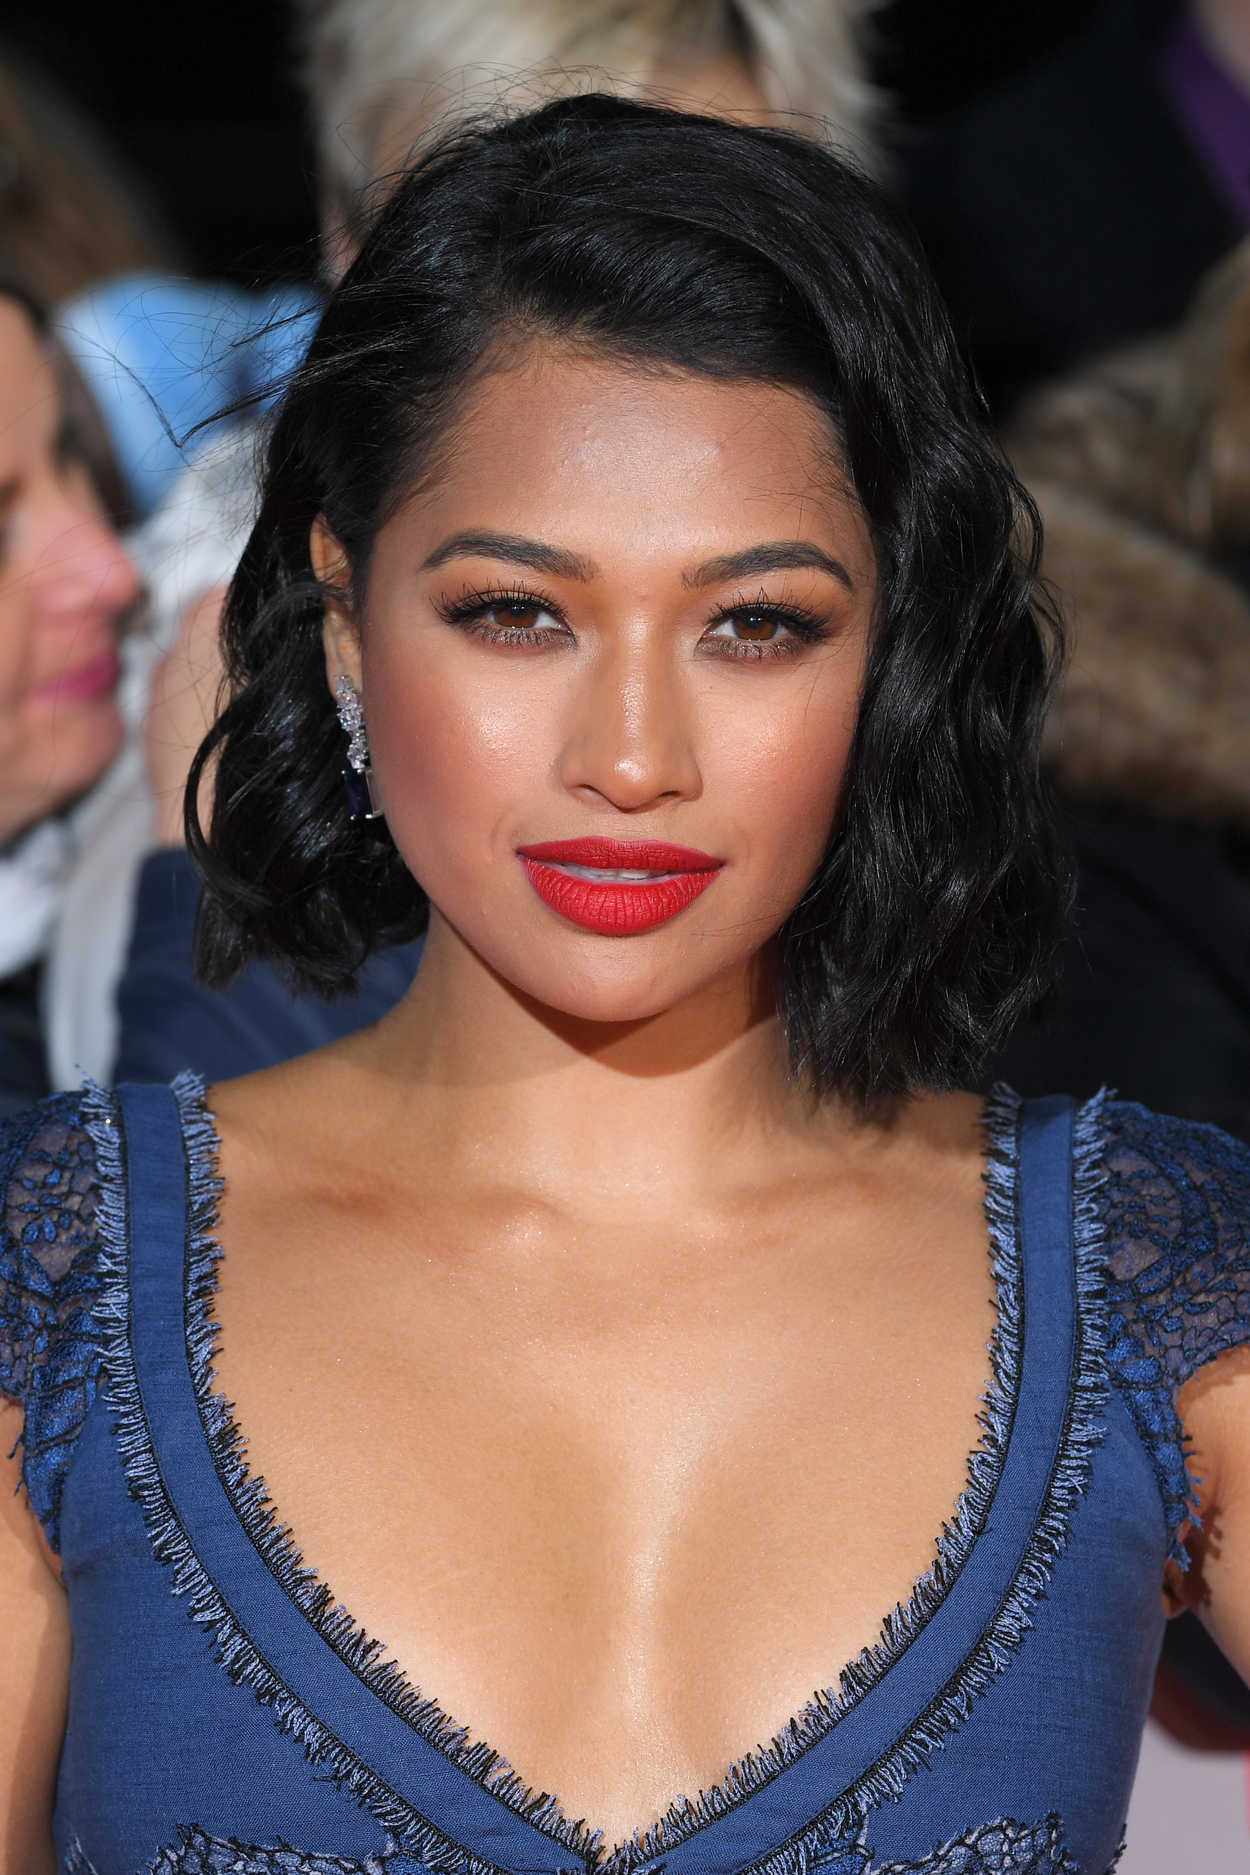 Vanessa White nudes (15 pictures), photo Boobs, Instagram, braless 2020